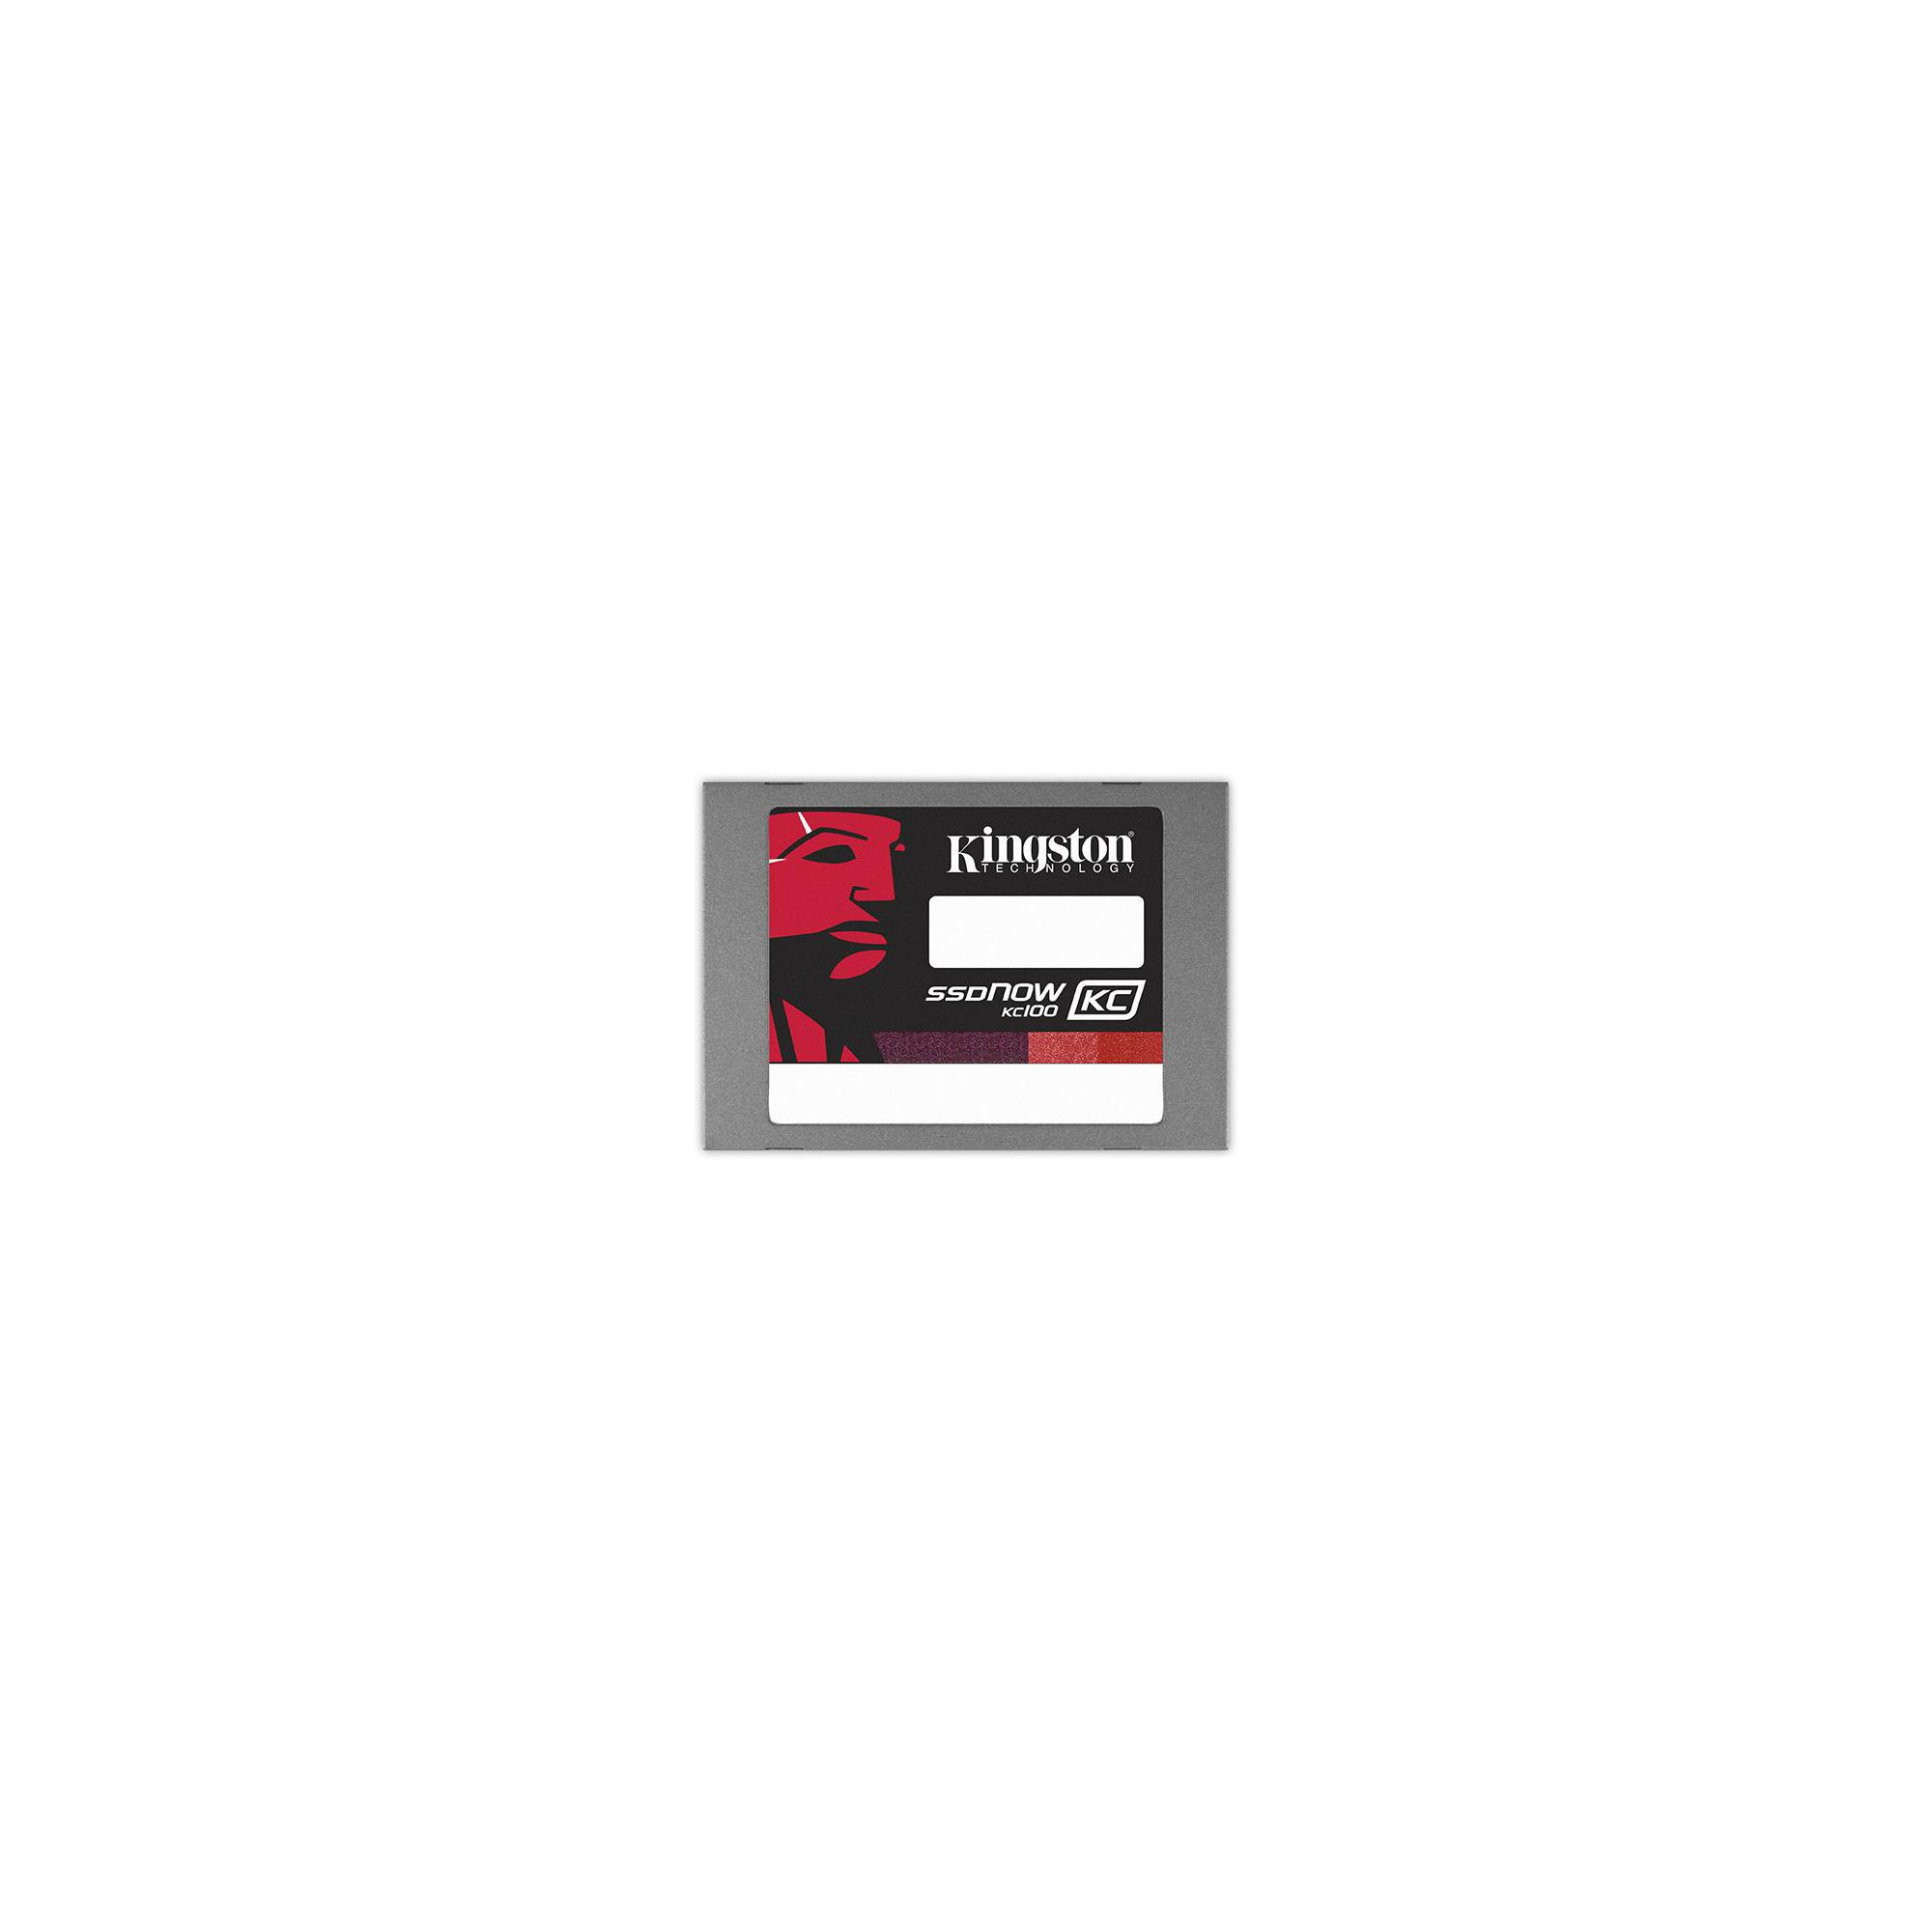 Kingston SSDNow KC100 480GB 2.5 inch SATA 3 Solid State Drive Upgrade Bundle Kit at Tesco Direct